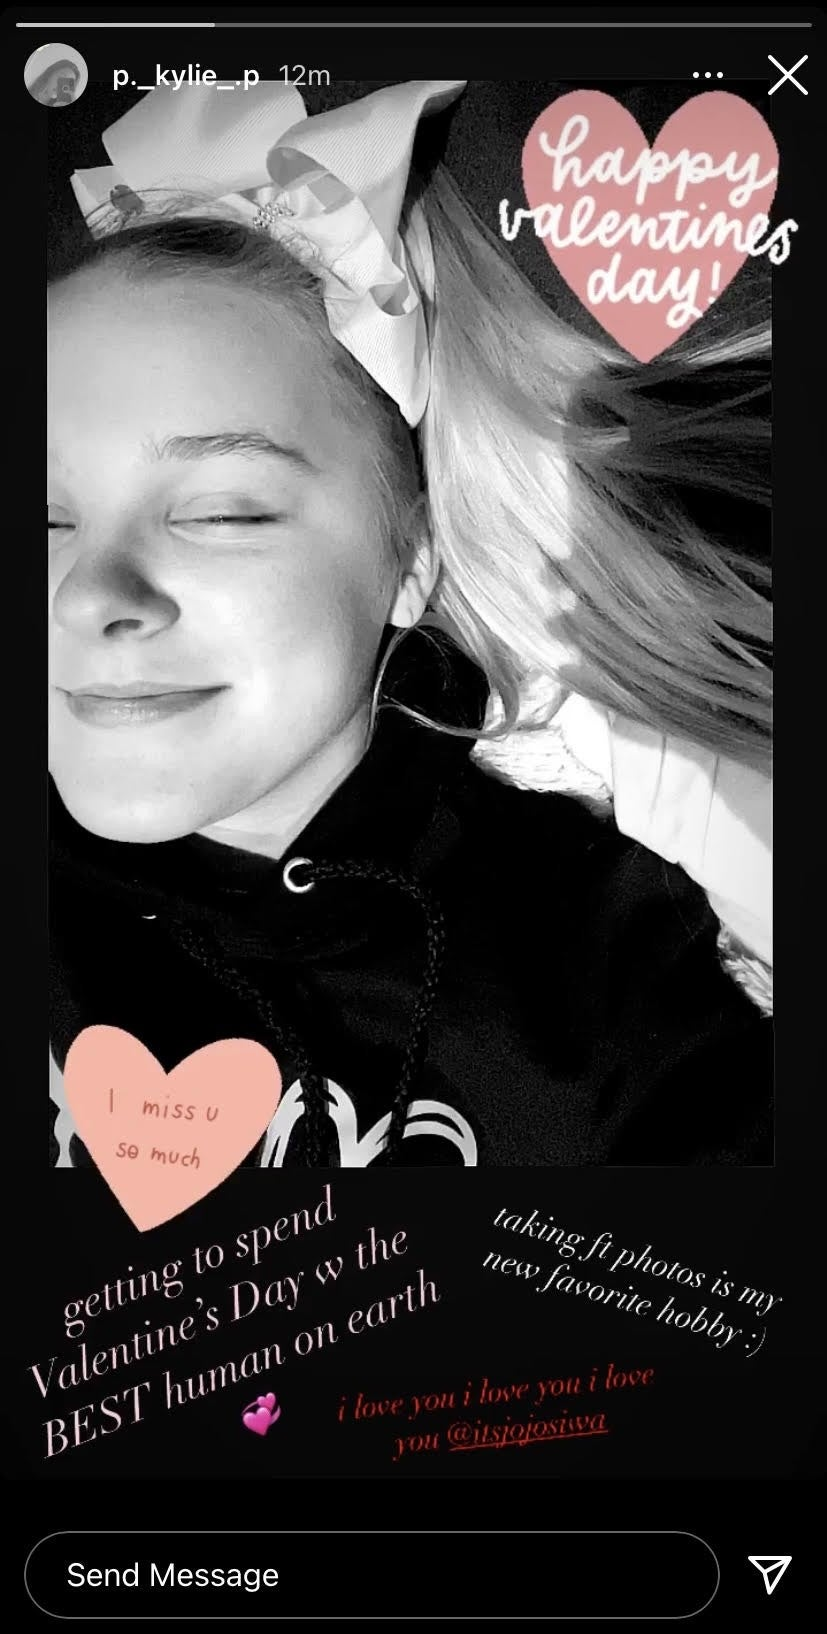 Kylie Tributes JoJo Siwa on Valentine's Day